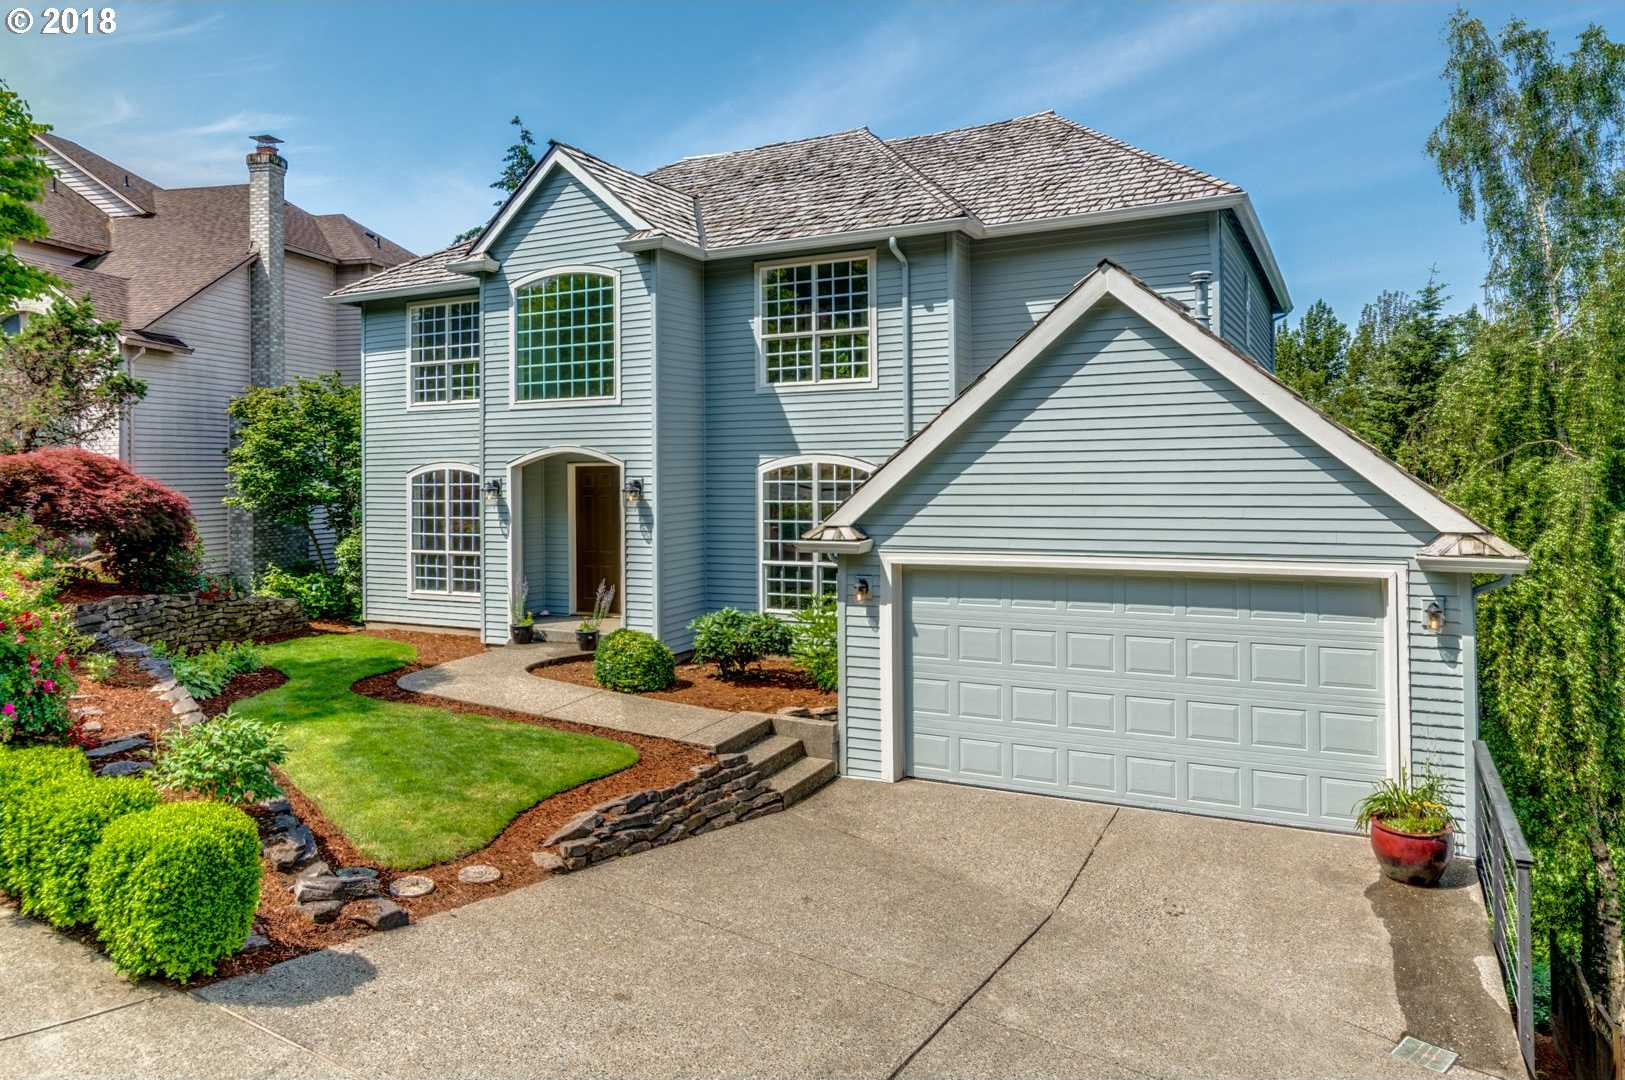 $699,000 - 5Br/4Ba -  for Sale in West Linn